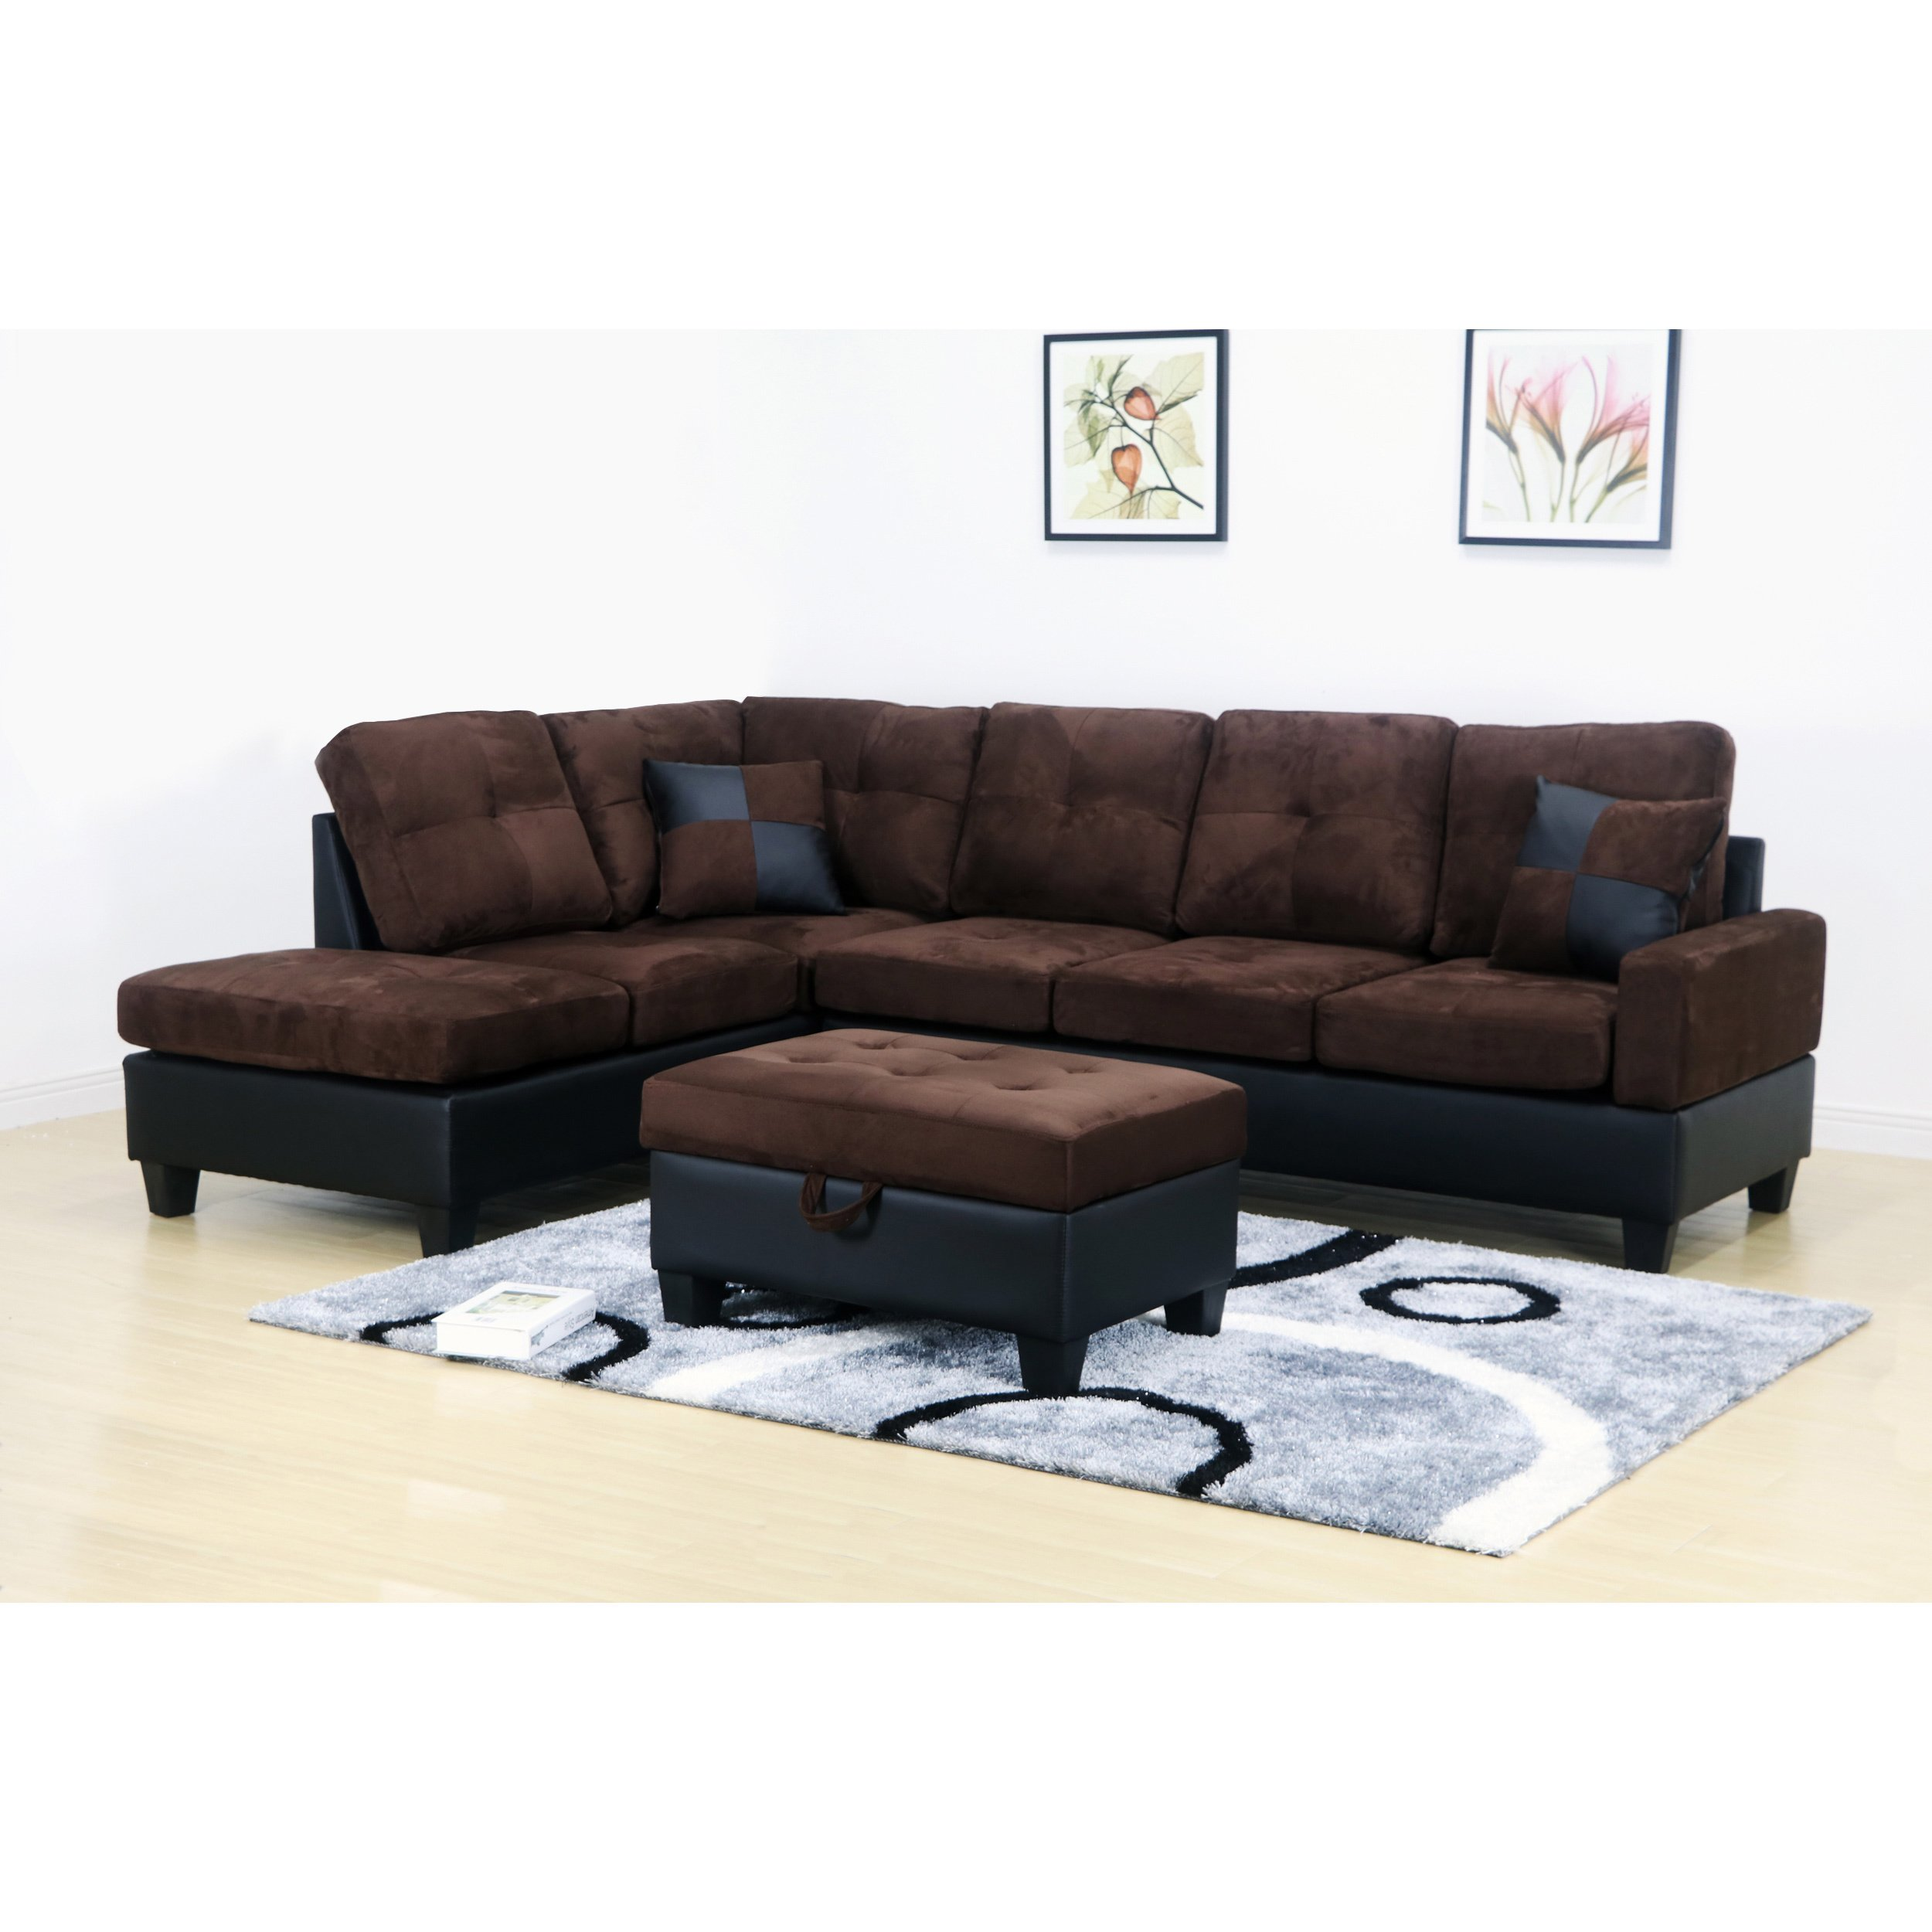 Marvelous Dark Brown Microfiber Sectional Sofa And Storage Ottoman Ibusinesslaw Wood Chair Design Ideas Ibusinesslaworg